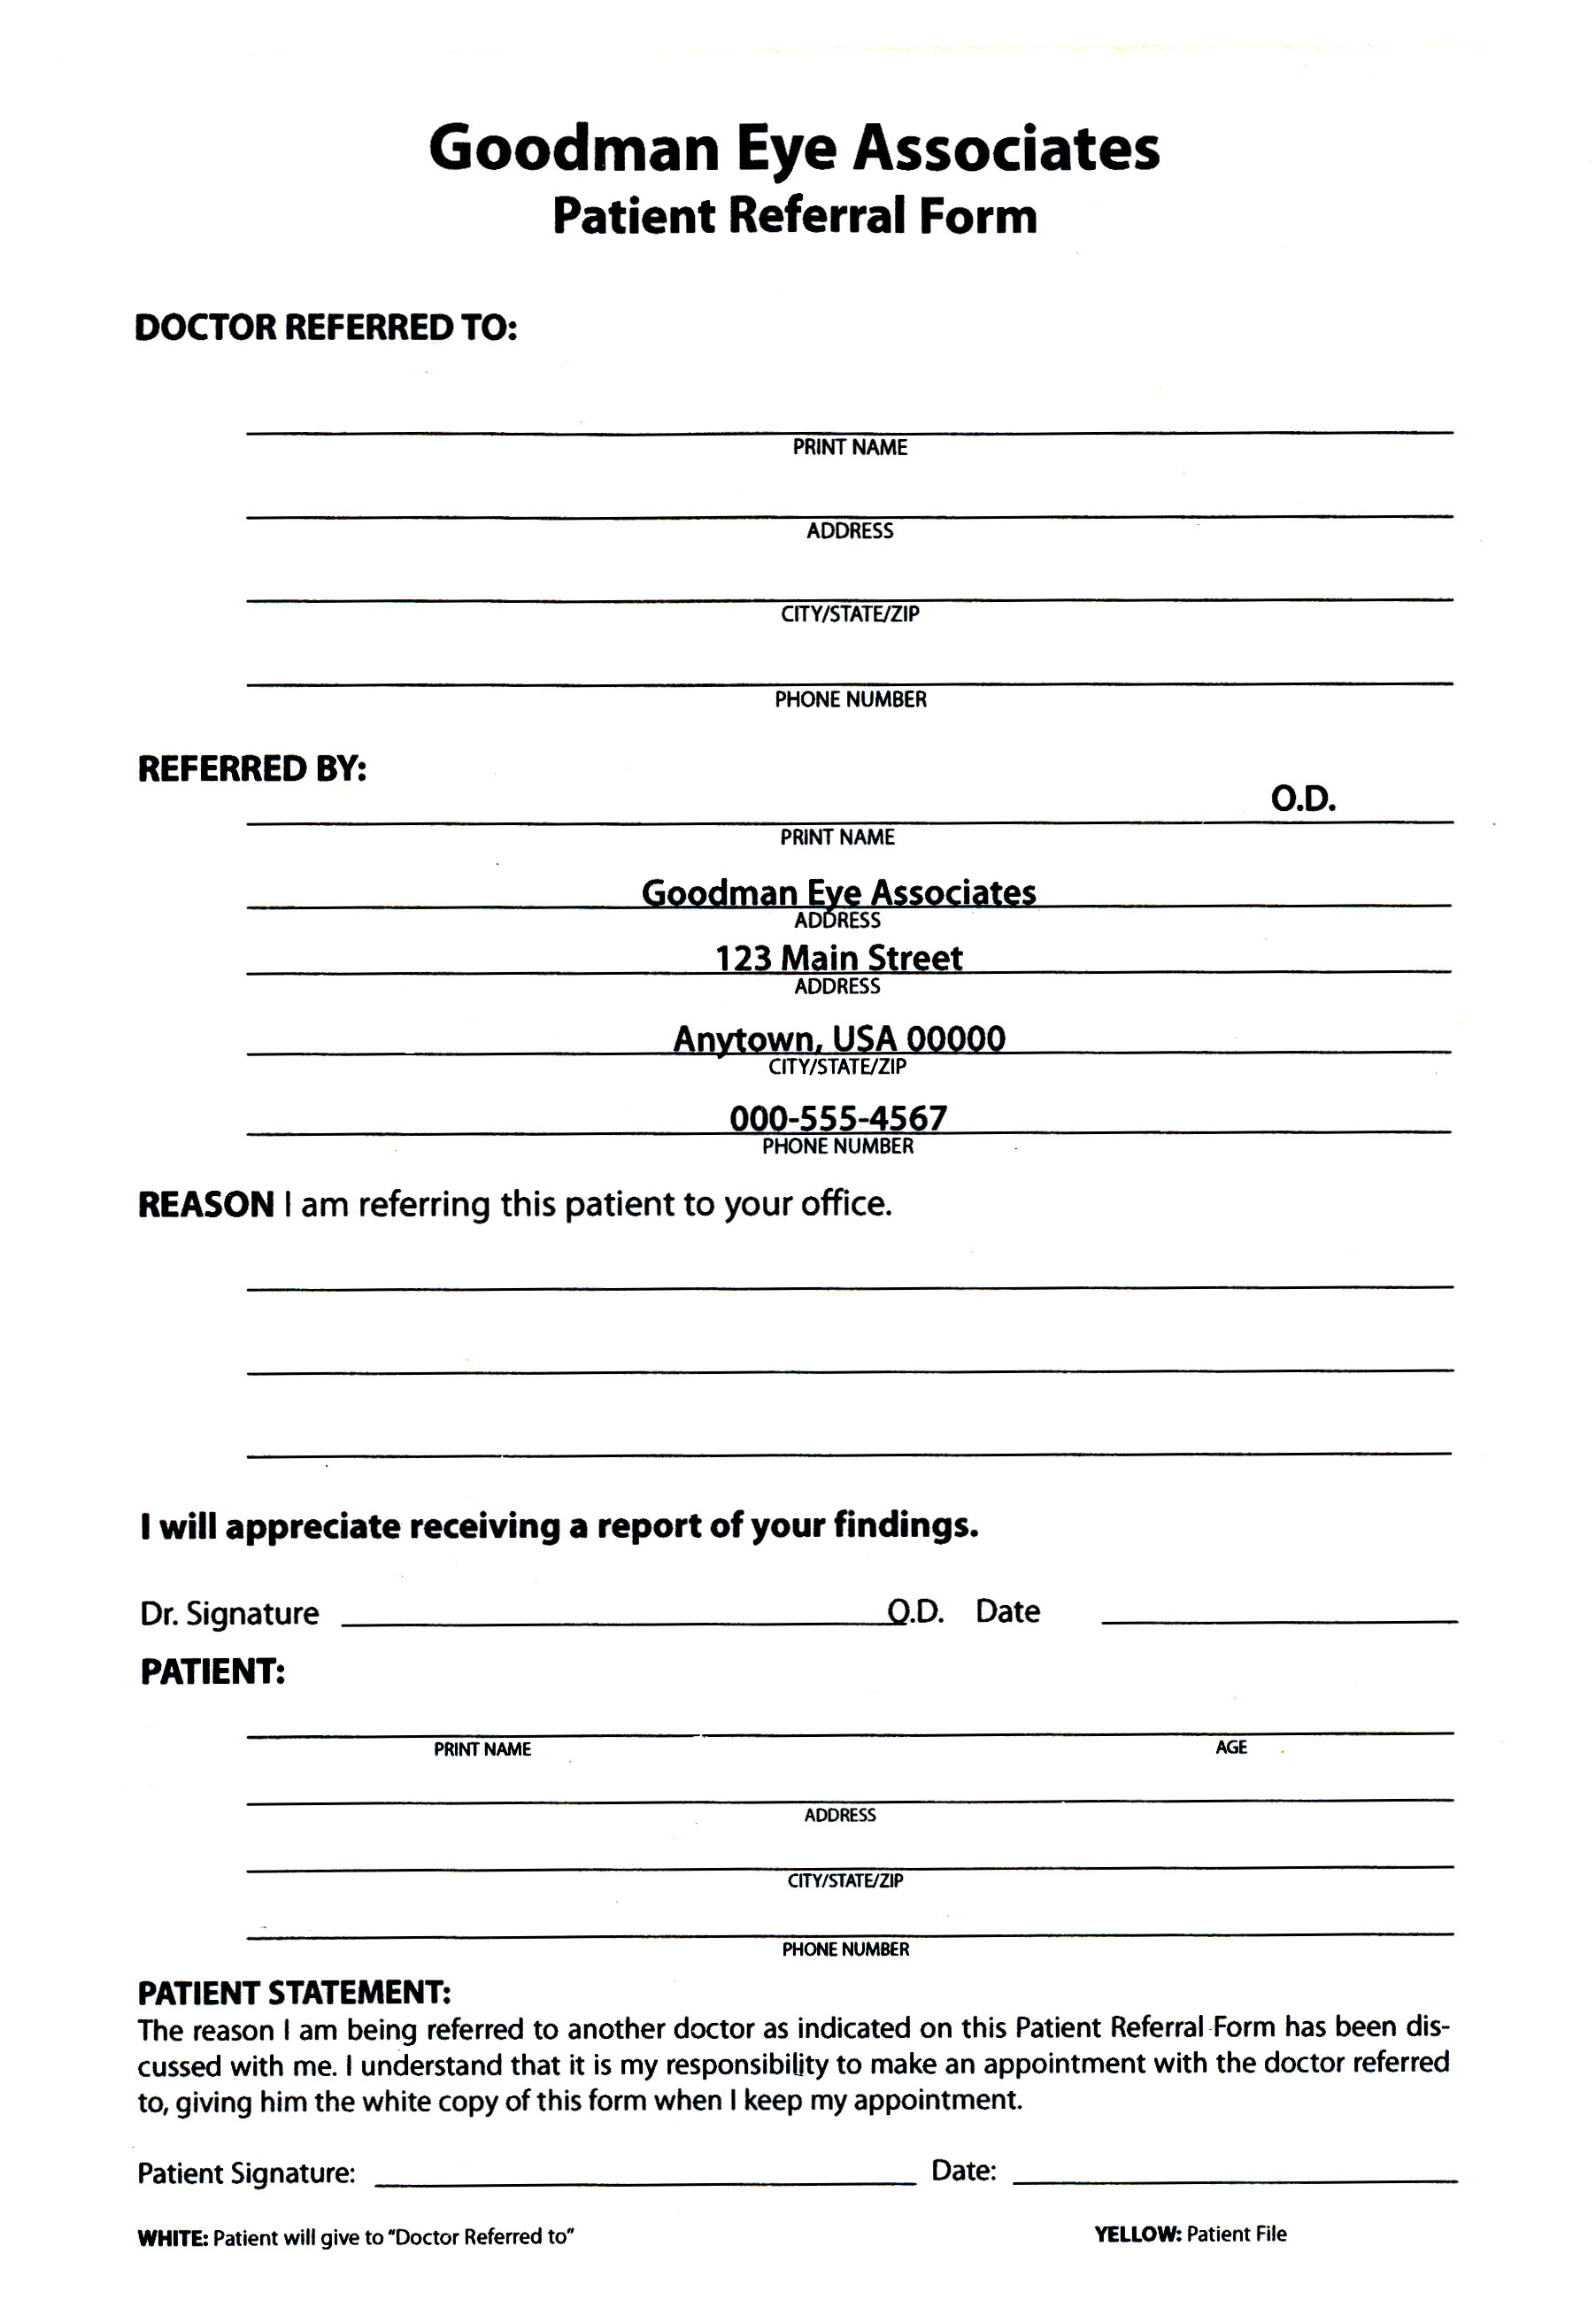 Medical referral form templates free printable for Referral document template